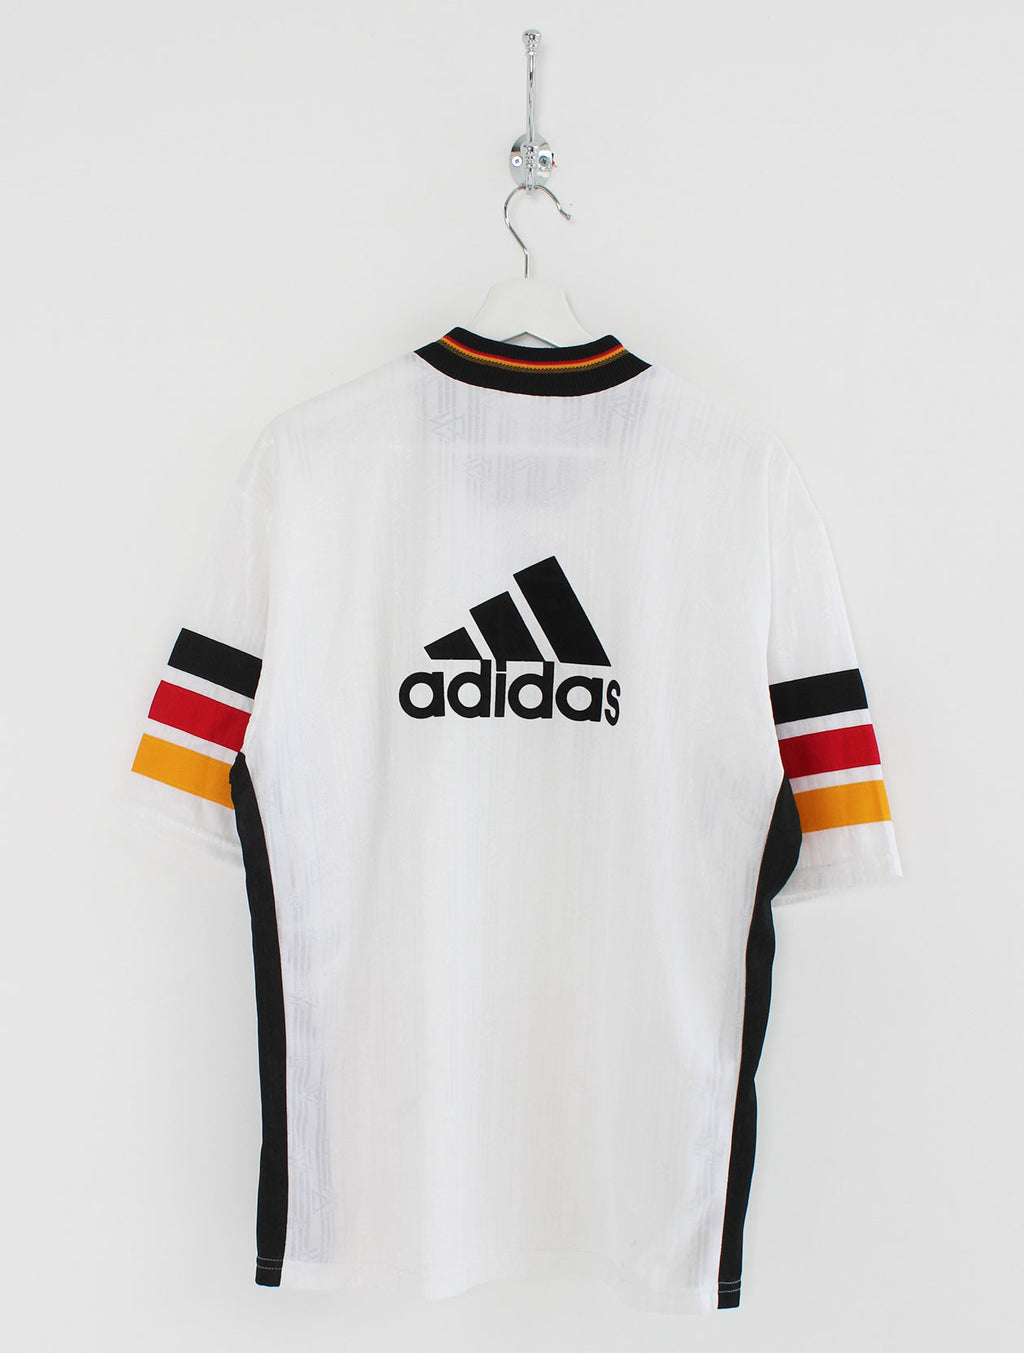 1992/94 Germany Football Shirt (M)